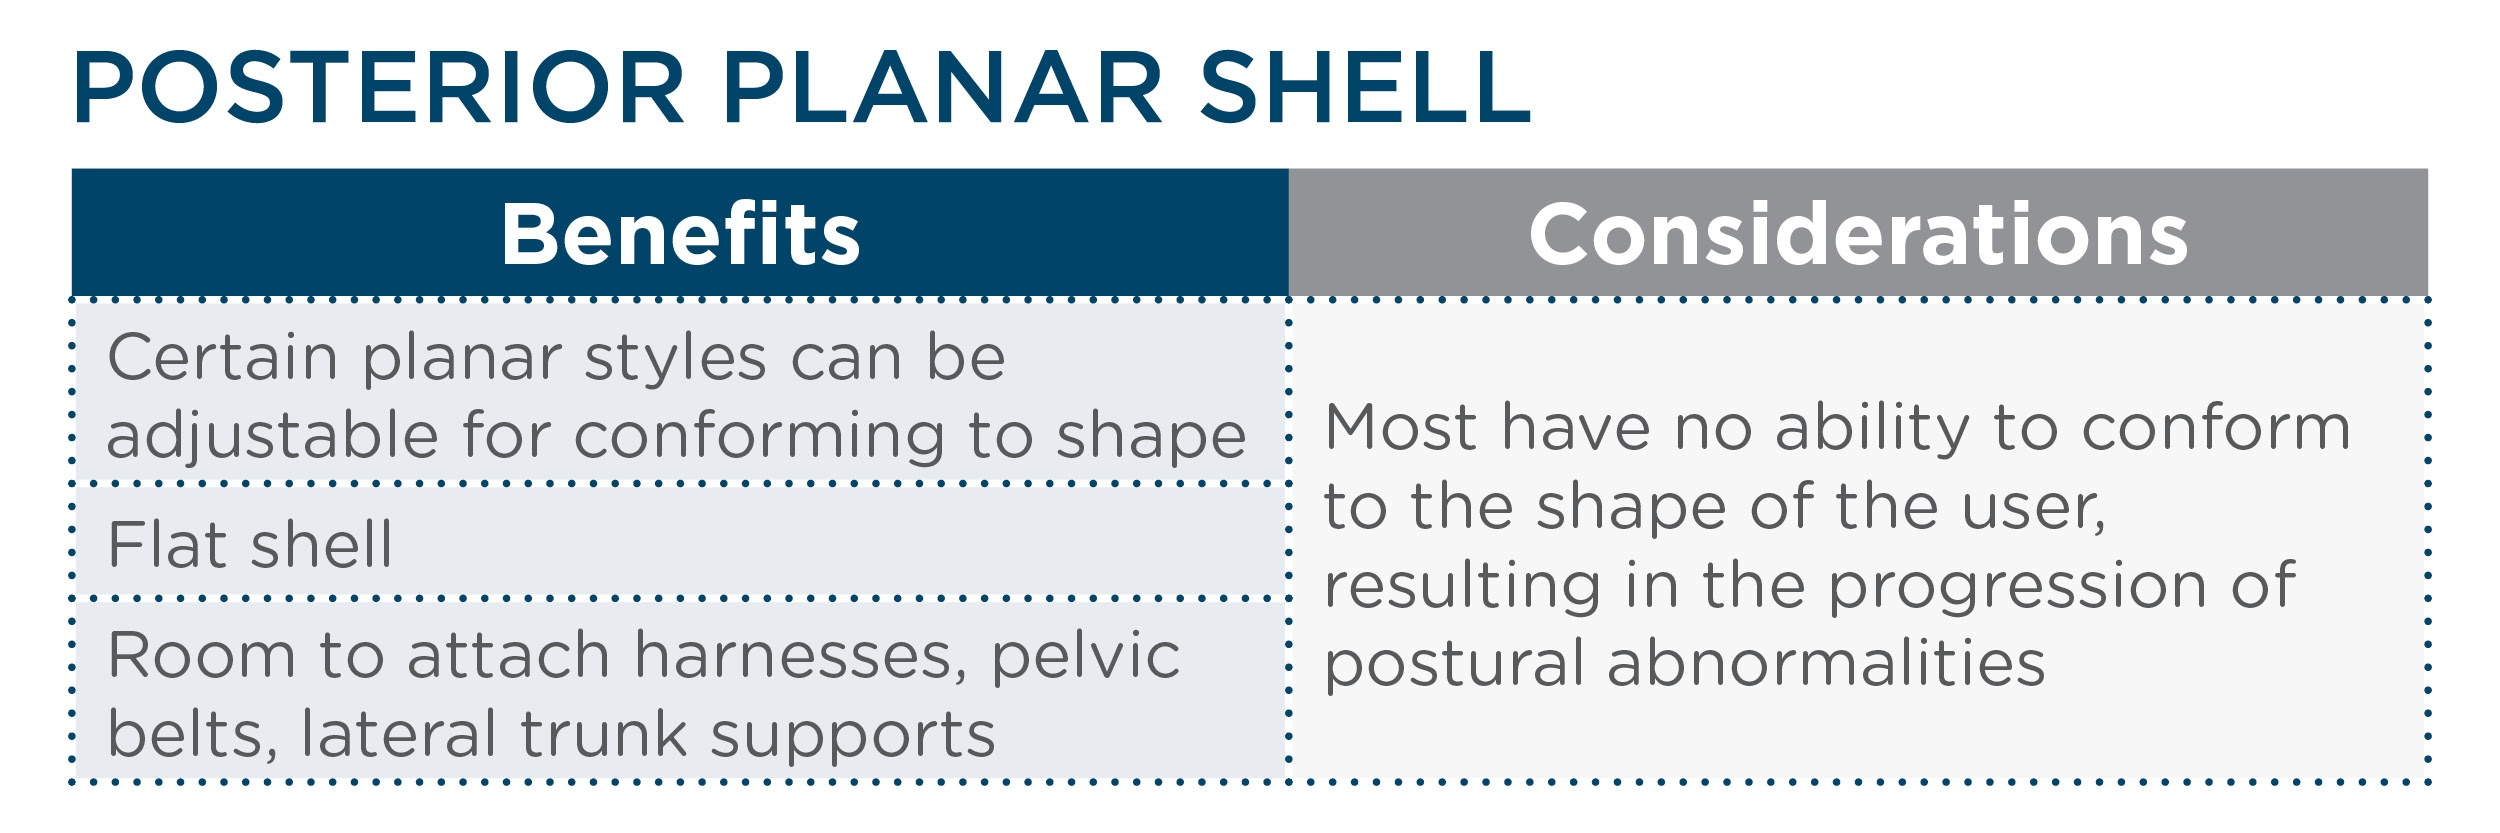 Posterior Planar Shell Chart